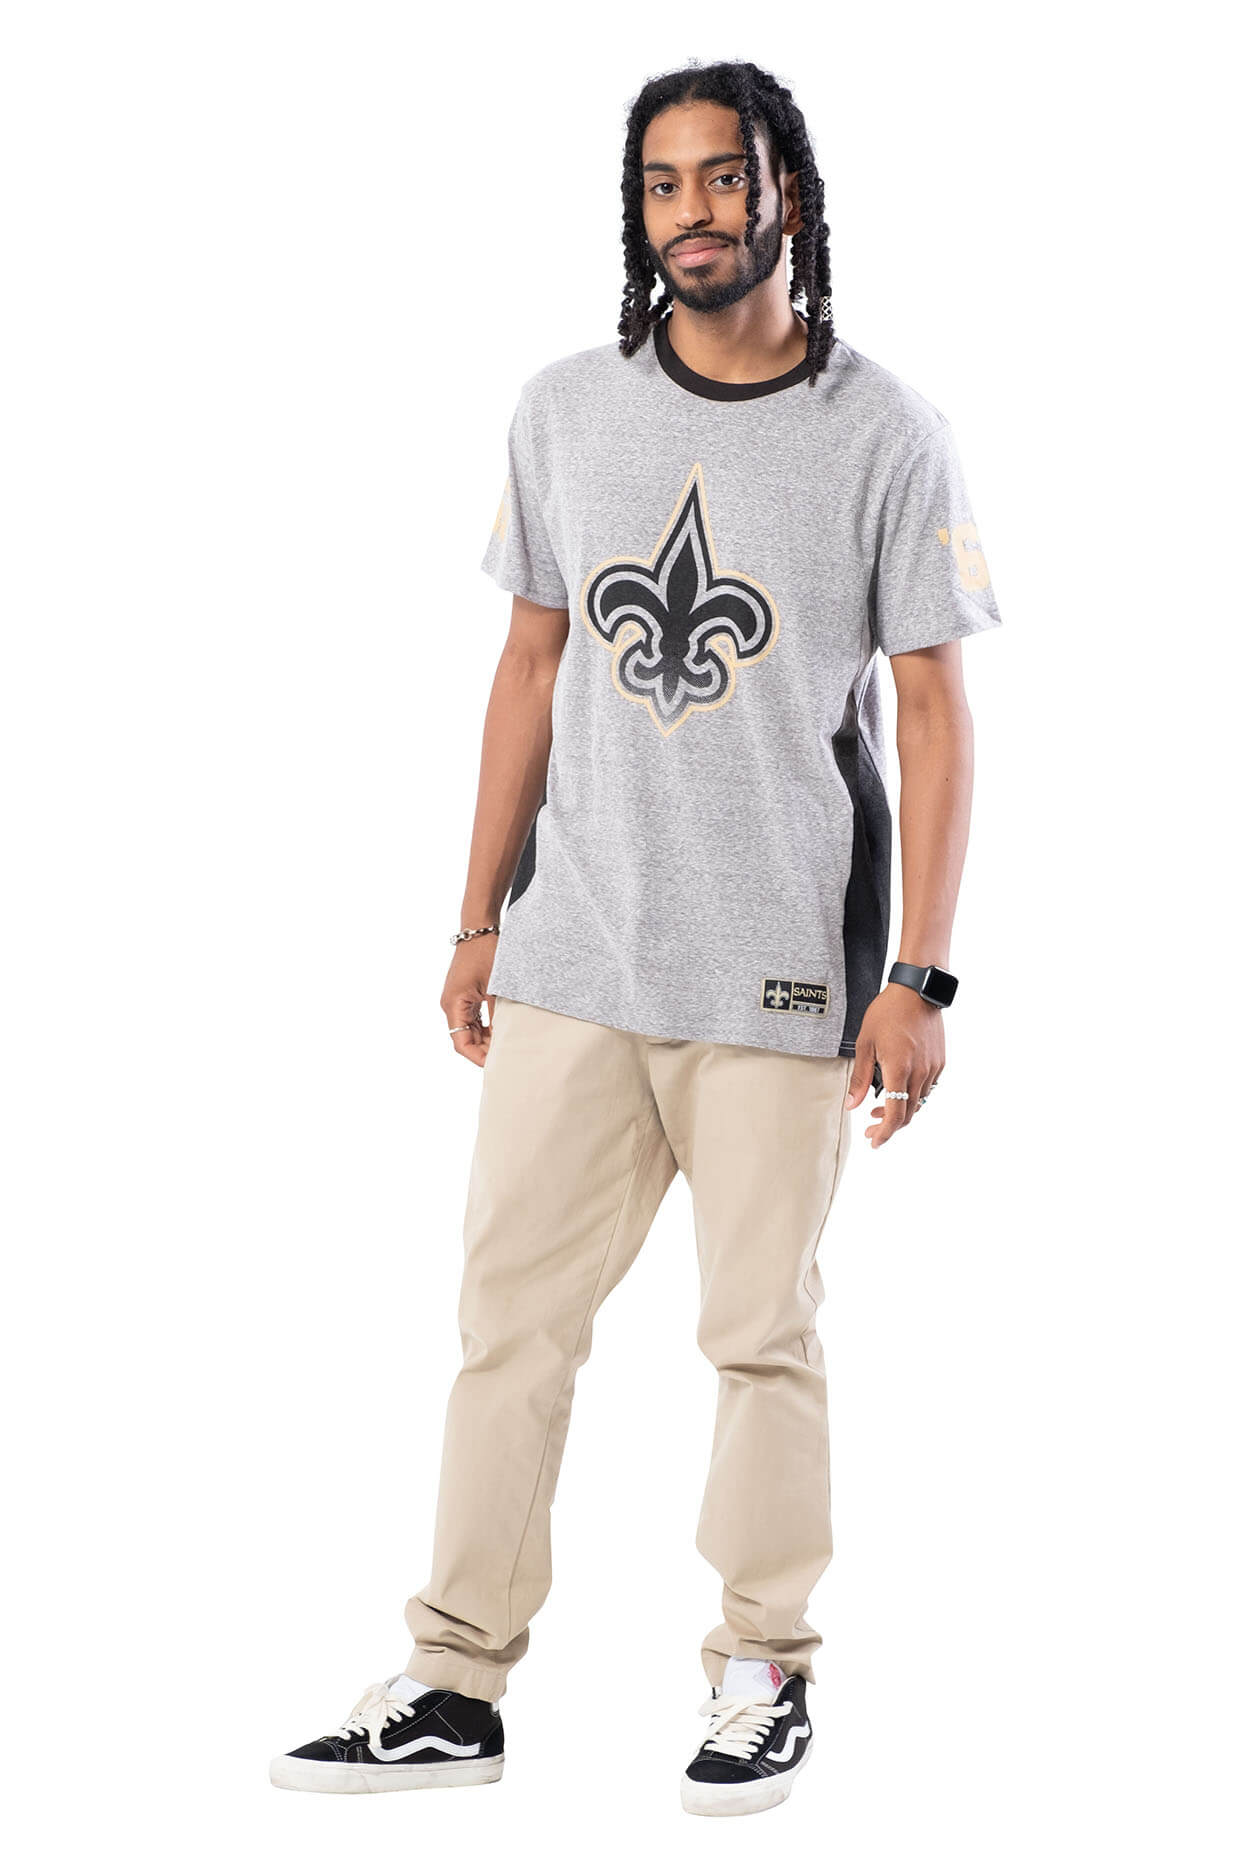 NFL New Orleans Saints Men's Vintage Ringer Short Sleeve Tee|New Orleans Saints